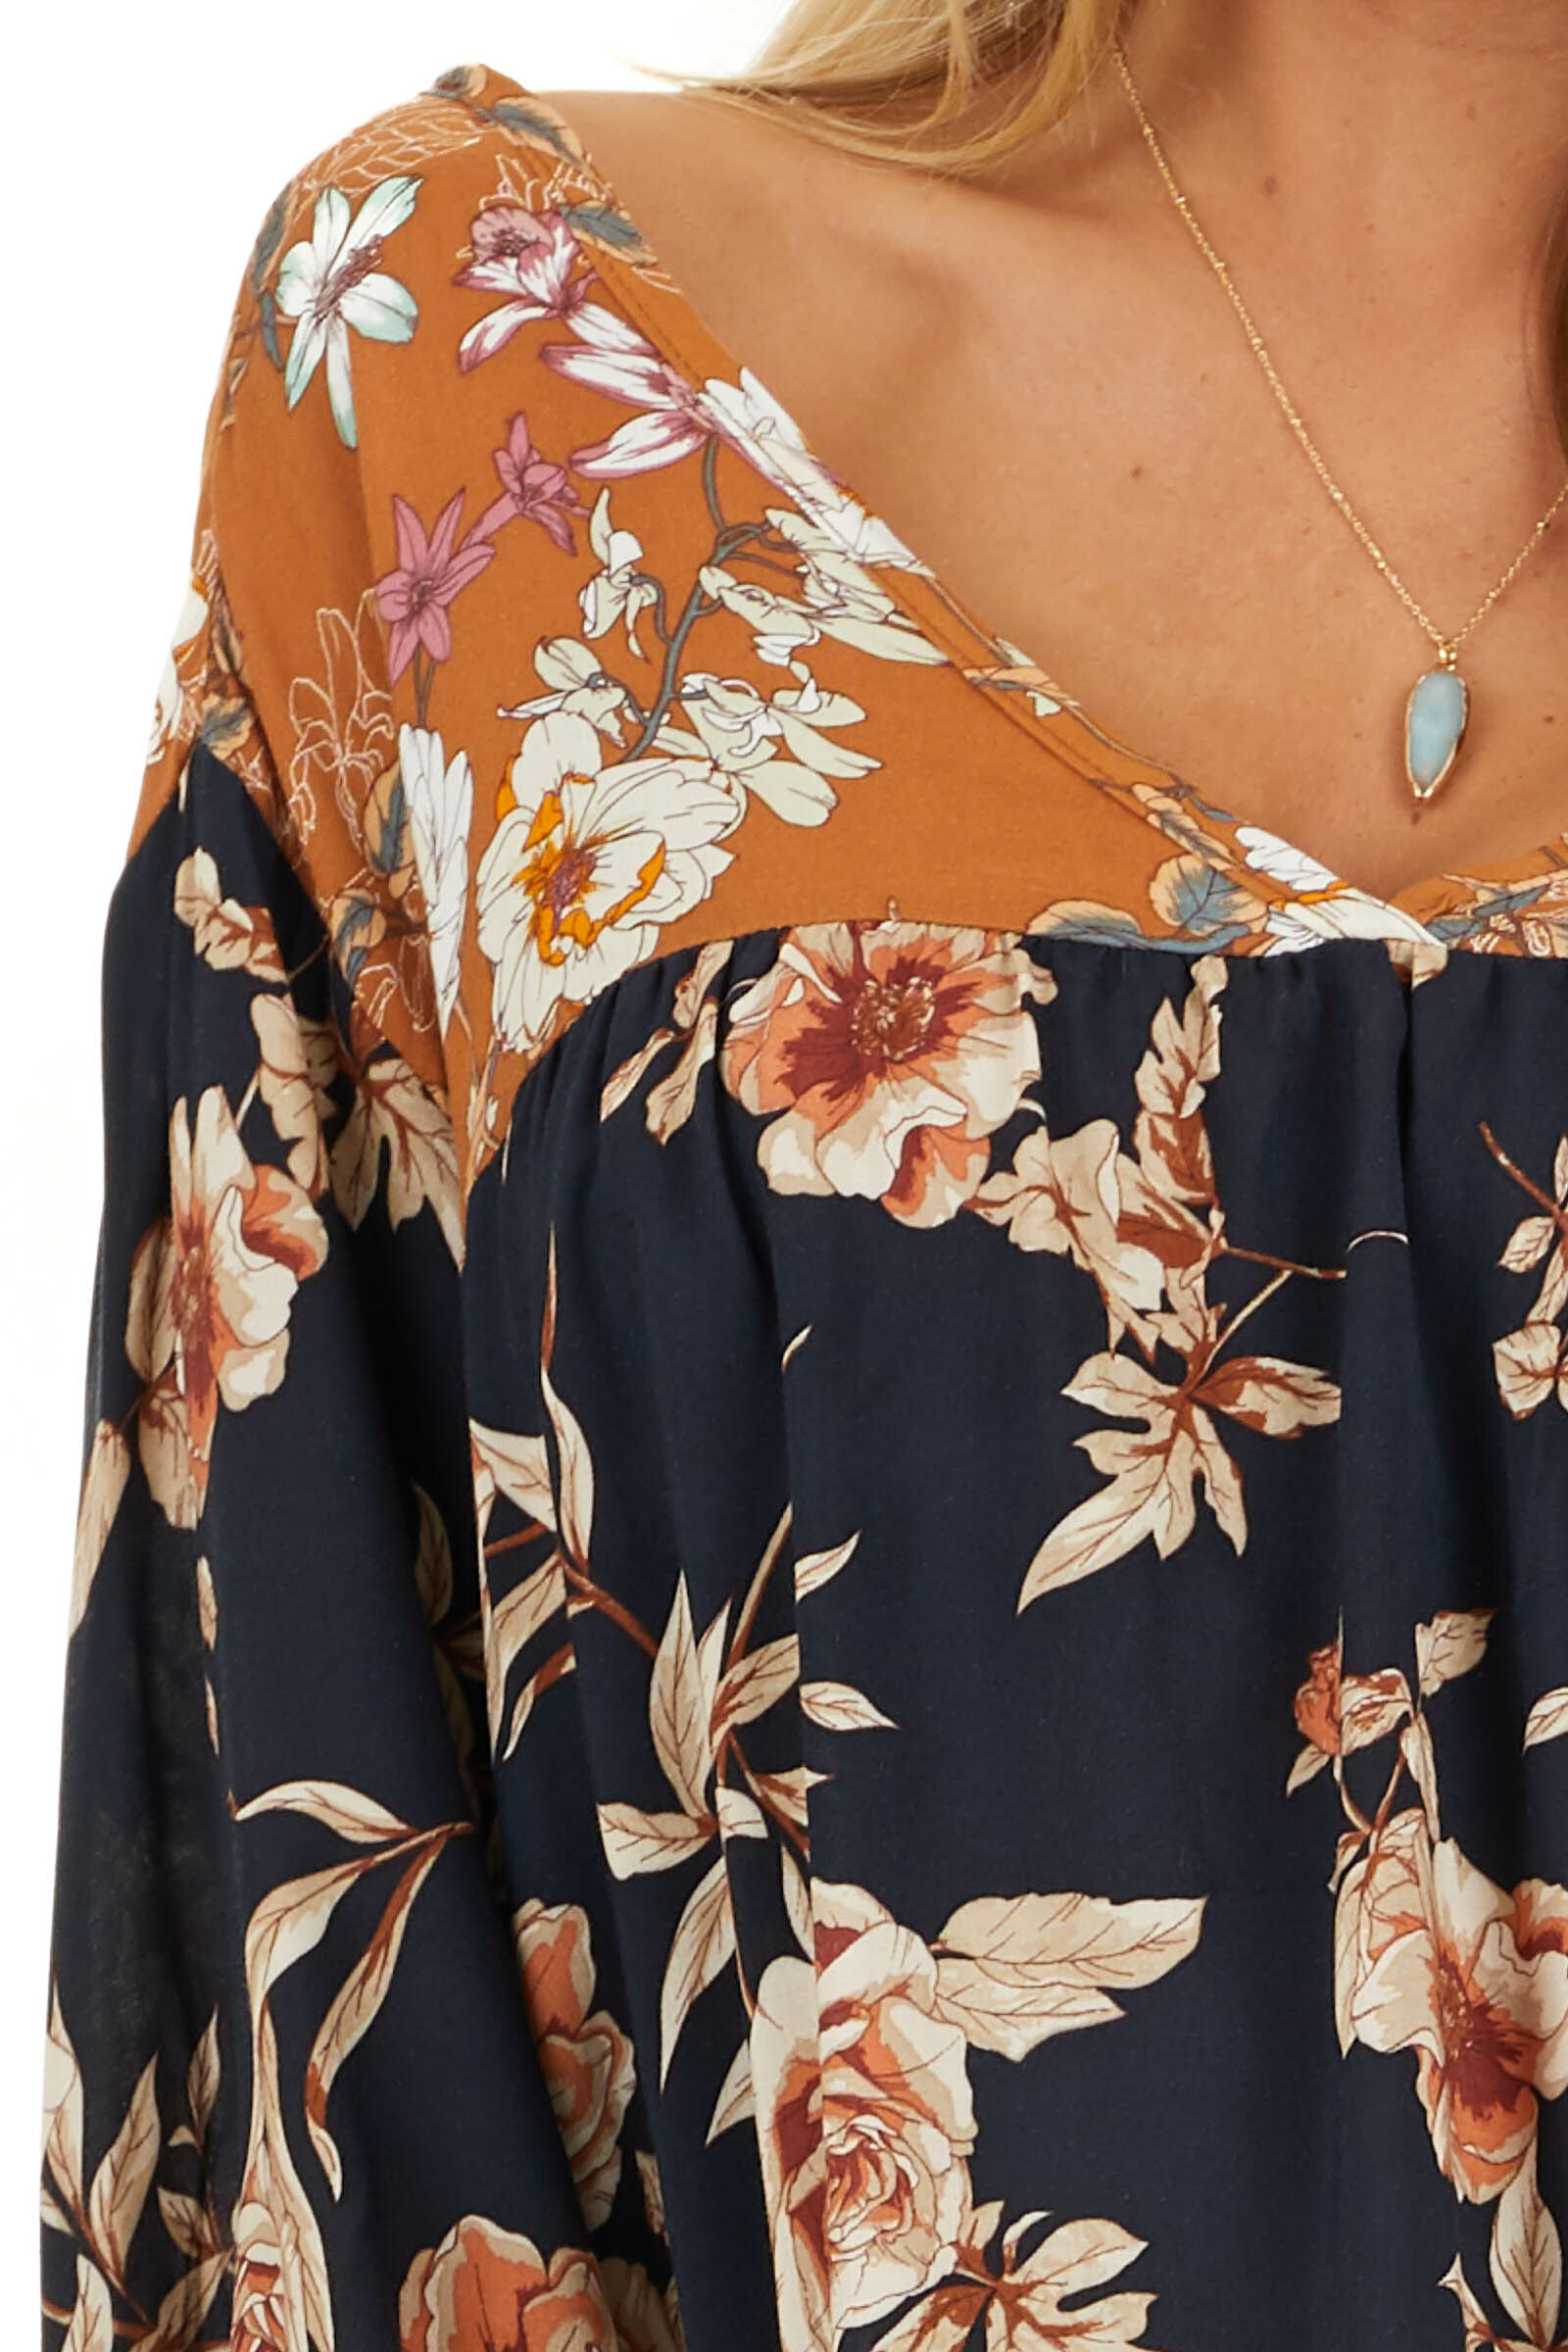 Navy and Mango Floral Woven Top with 3/4 Bubble Sleeves detail